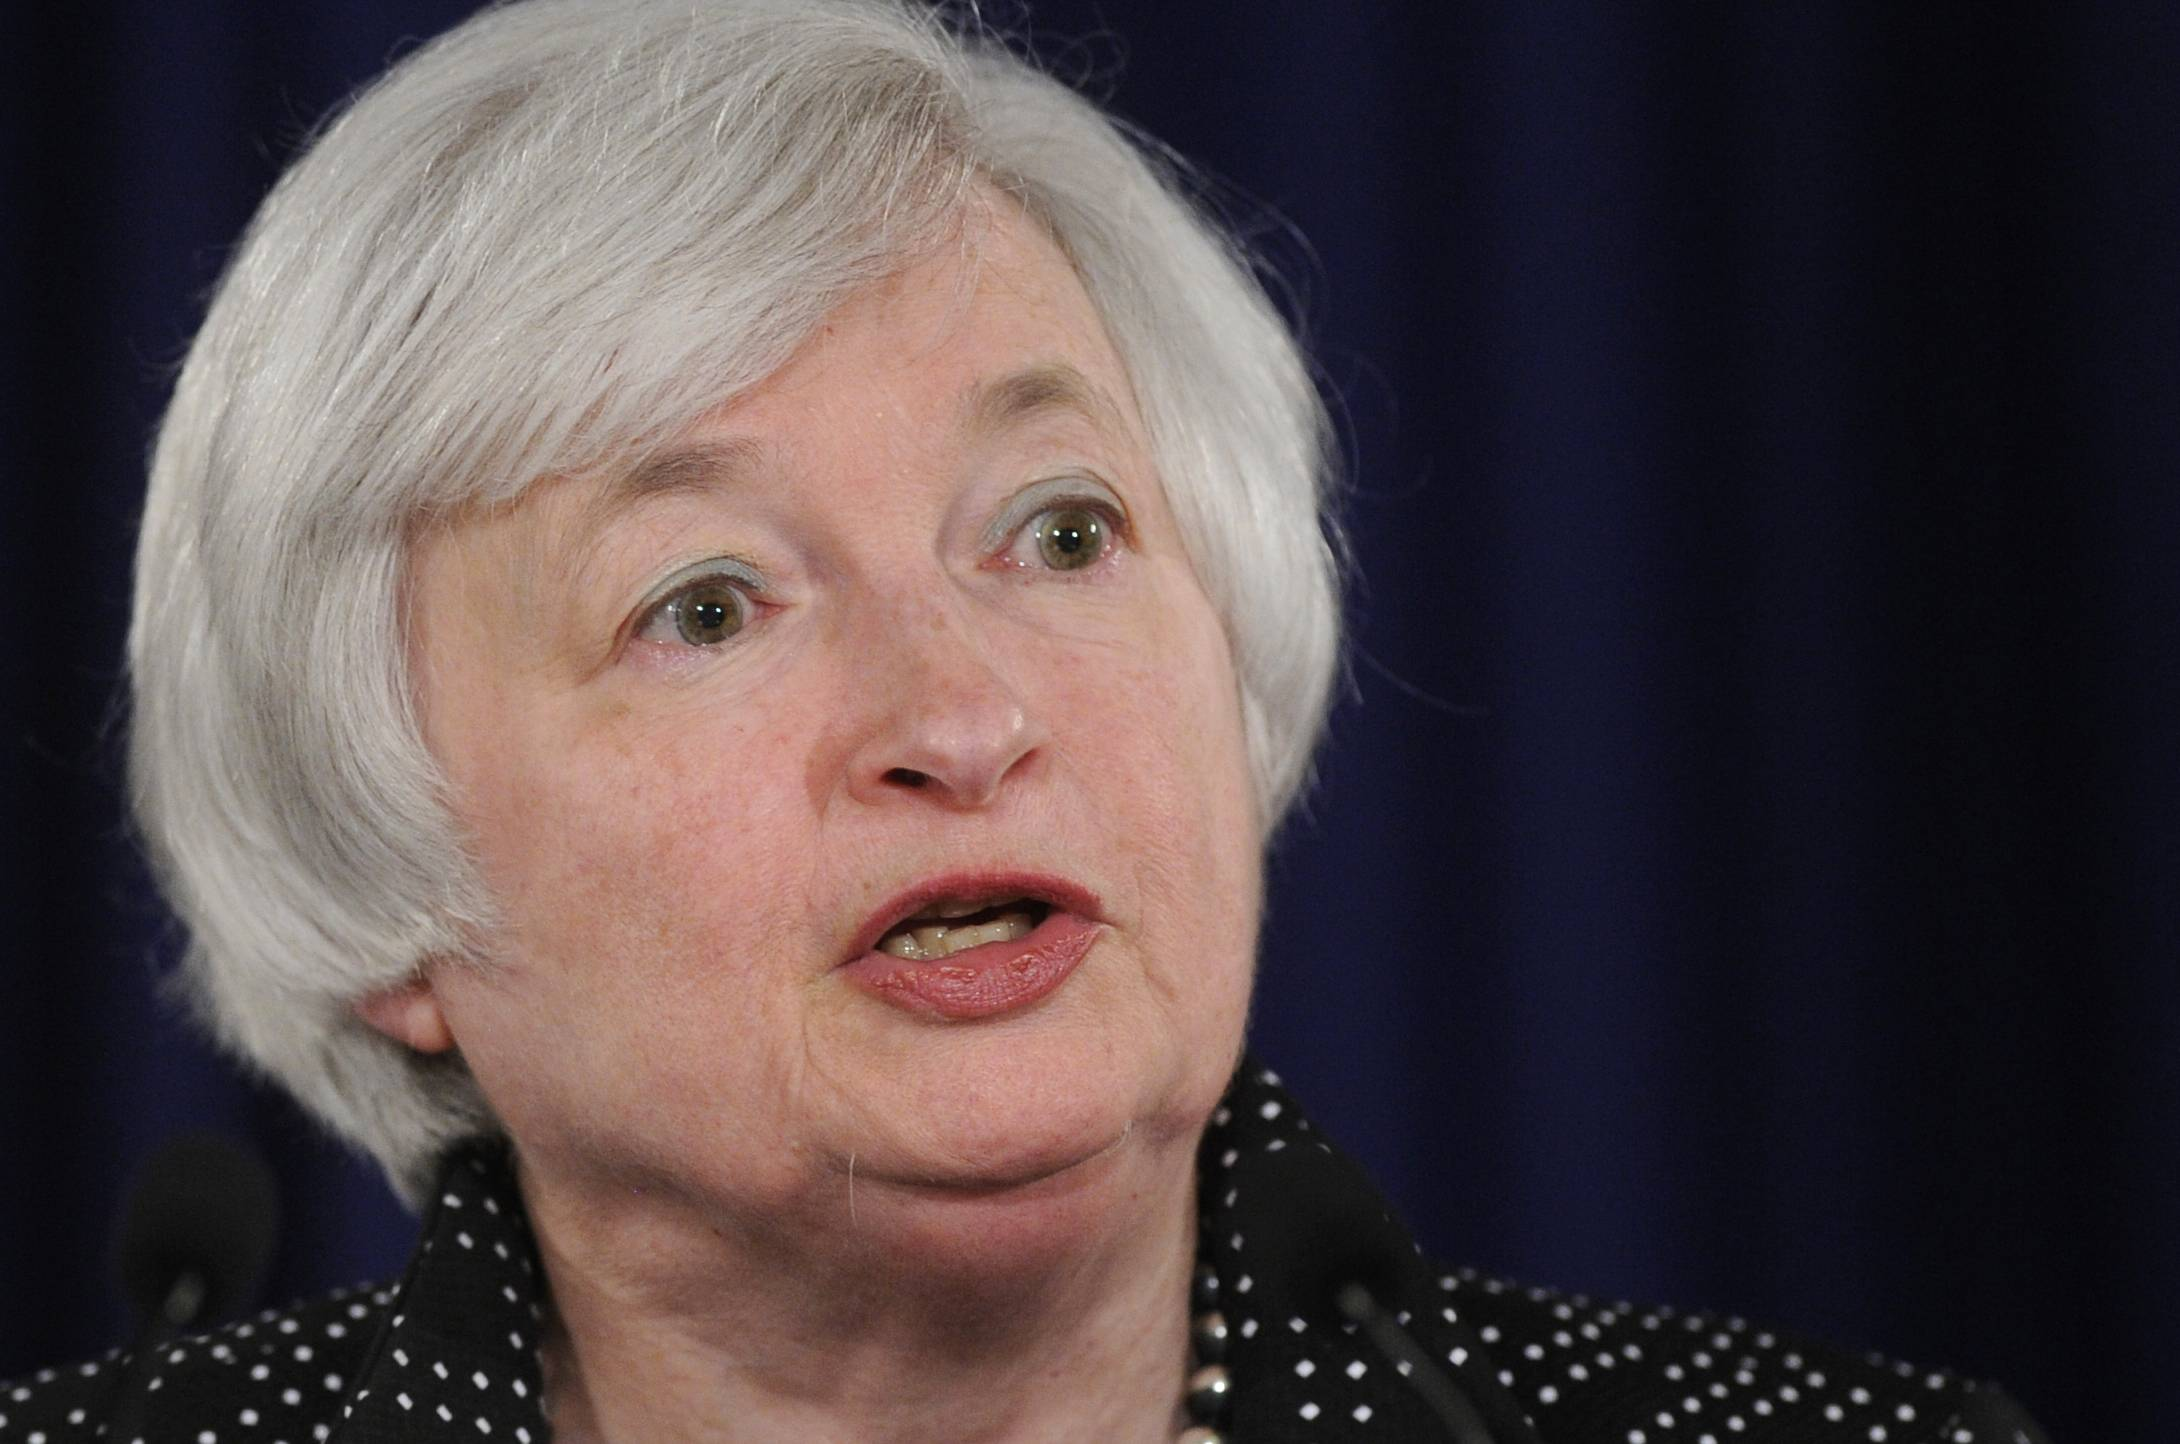 Federal Reserve Chair Janet Yellen said Friday that the Great Recession complicated the Fed's ability to assess the U.S. job market and made it harder to determine when to adjust interest rates.